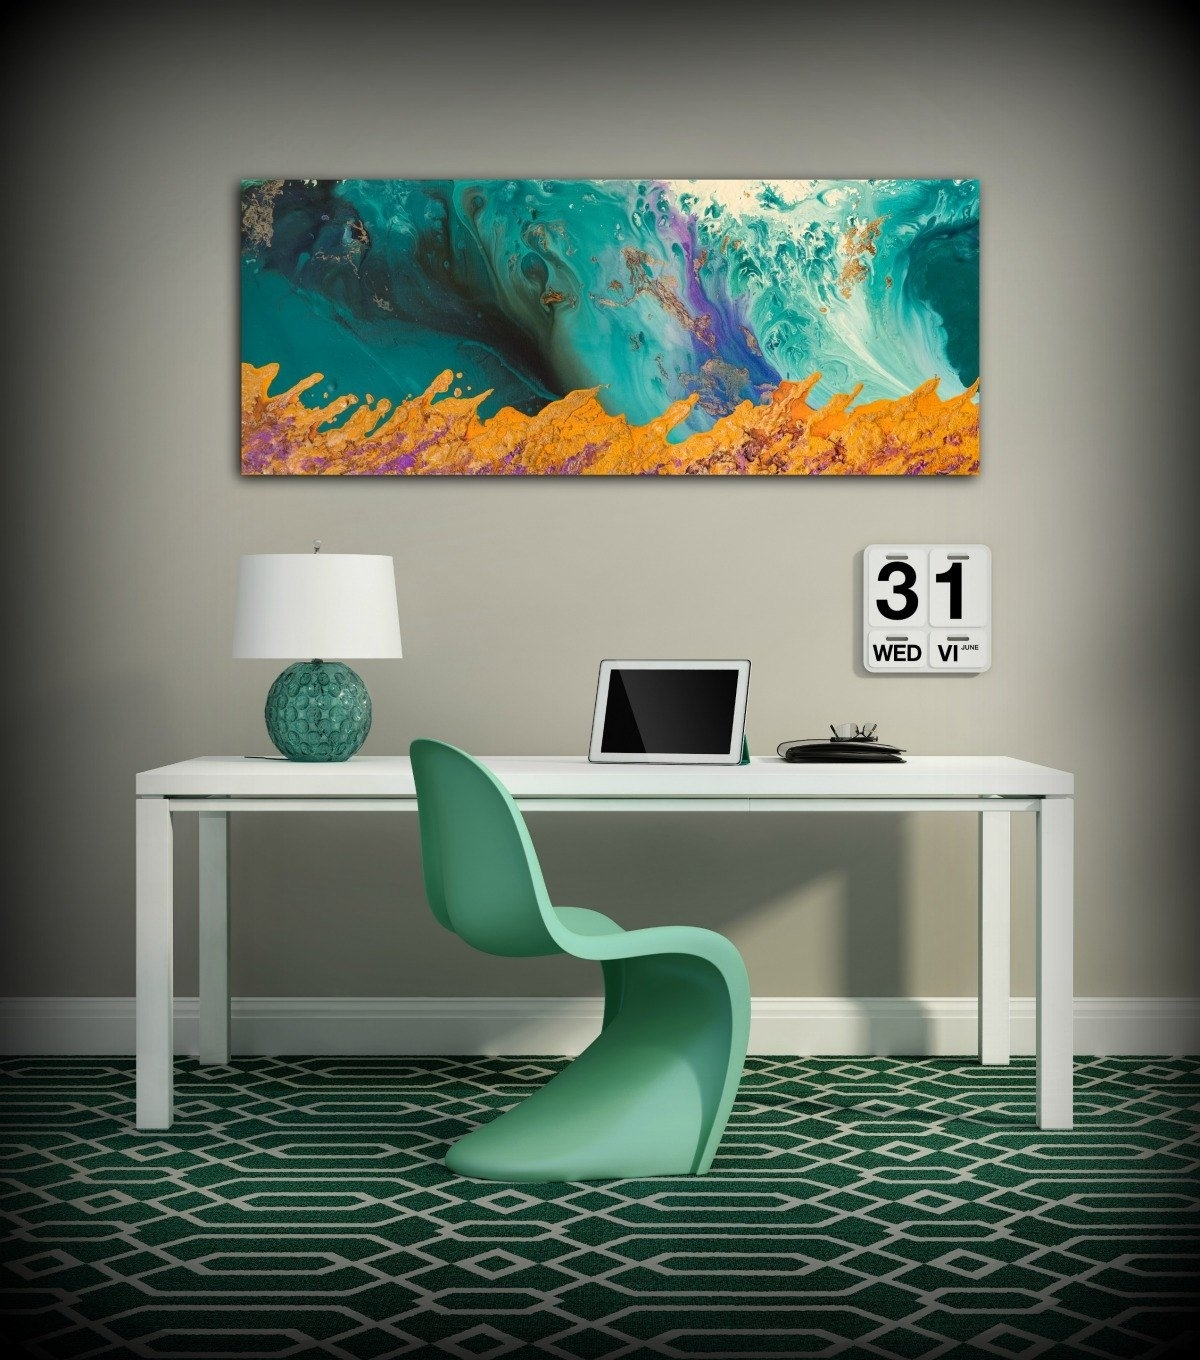 Canvas Print Wall Decor Large Abstract Wall Art Teal And Orange Within Most Up To Date Oversized Teal Canvas Wall Art (View 10 of 20)